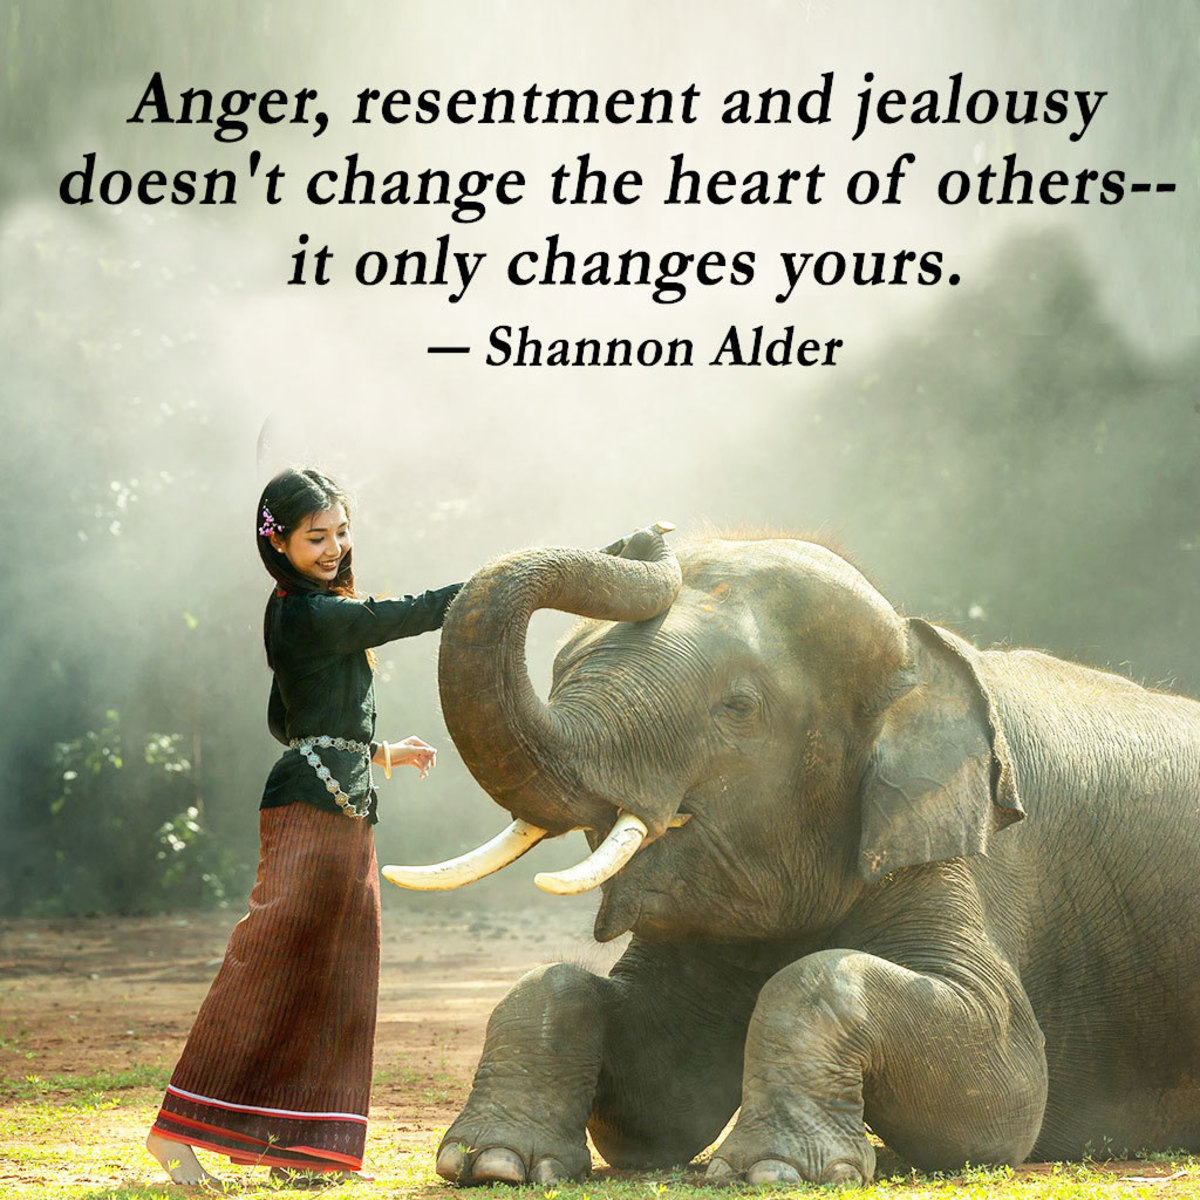 """""""Anger, resentment and jealousy doesn't change the heart of others-- it only changes yours."""" ― Shannon Alder"""